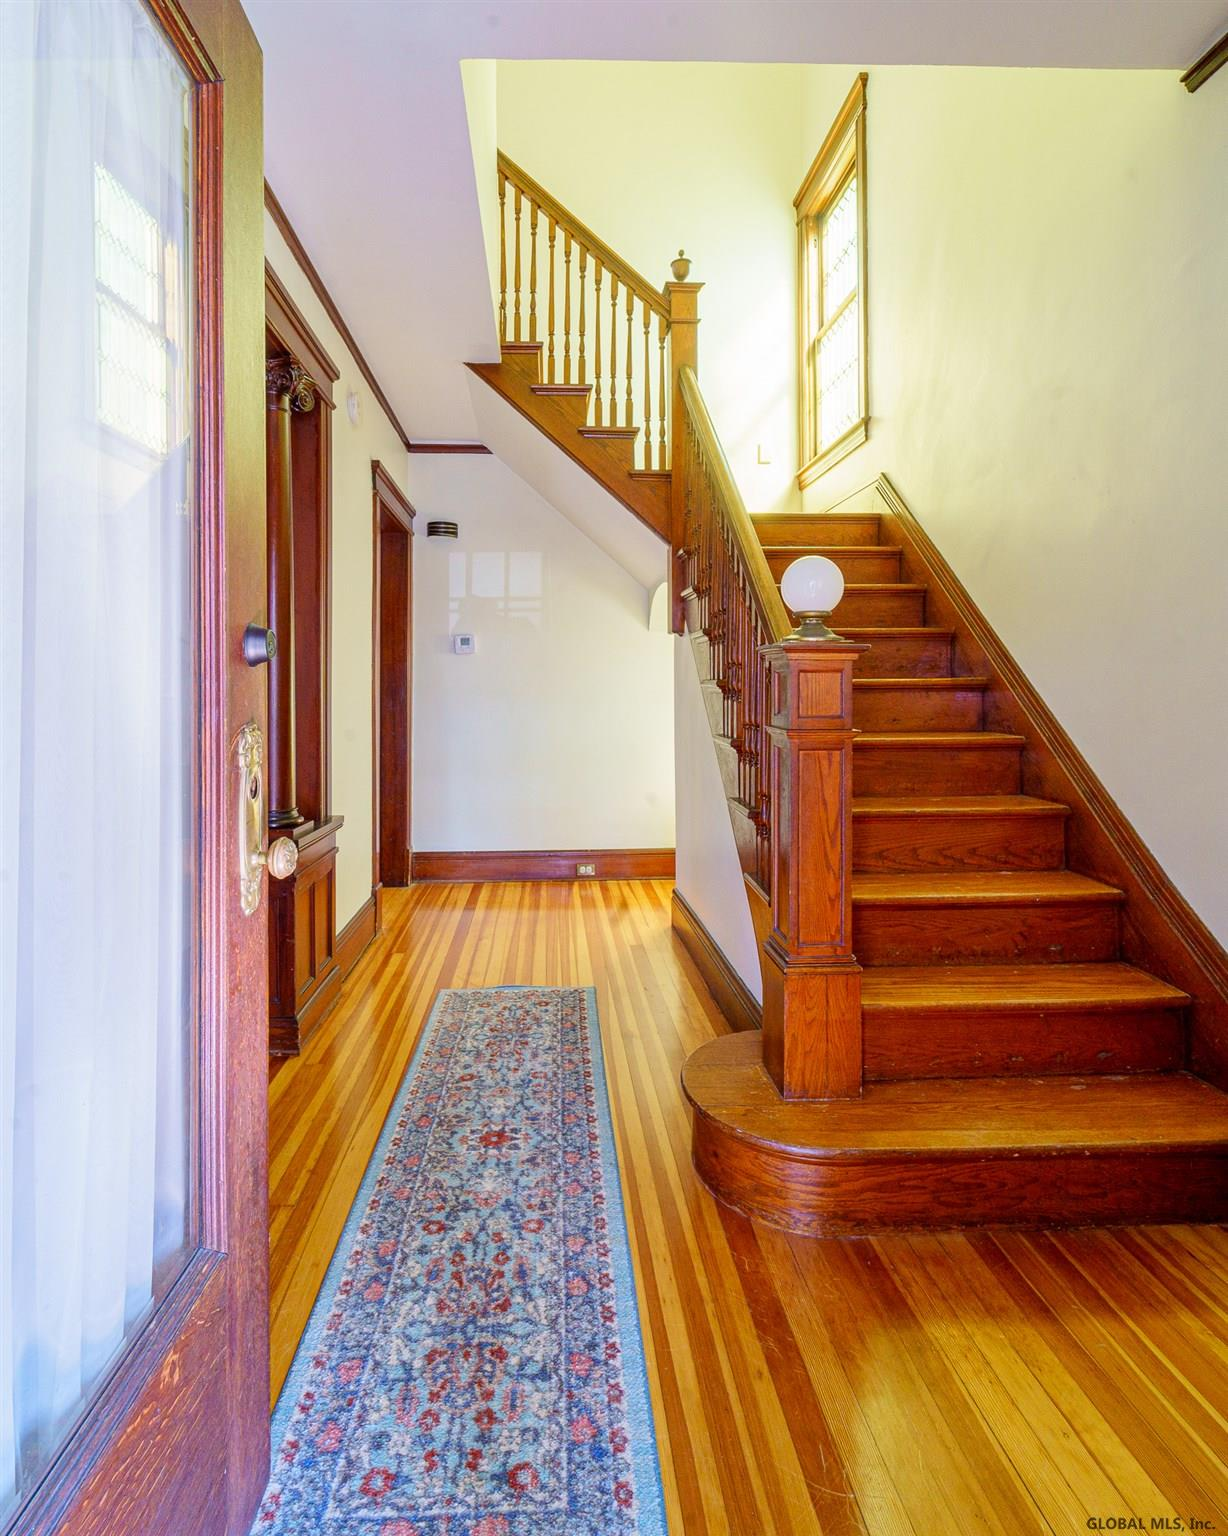 1437 WESTERN AV in Albany, NY Listed For $269,900.00 by ...